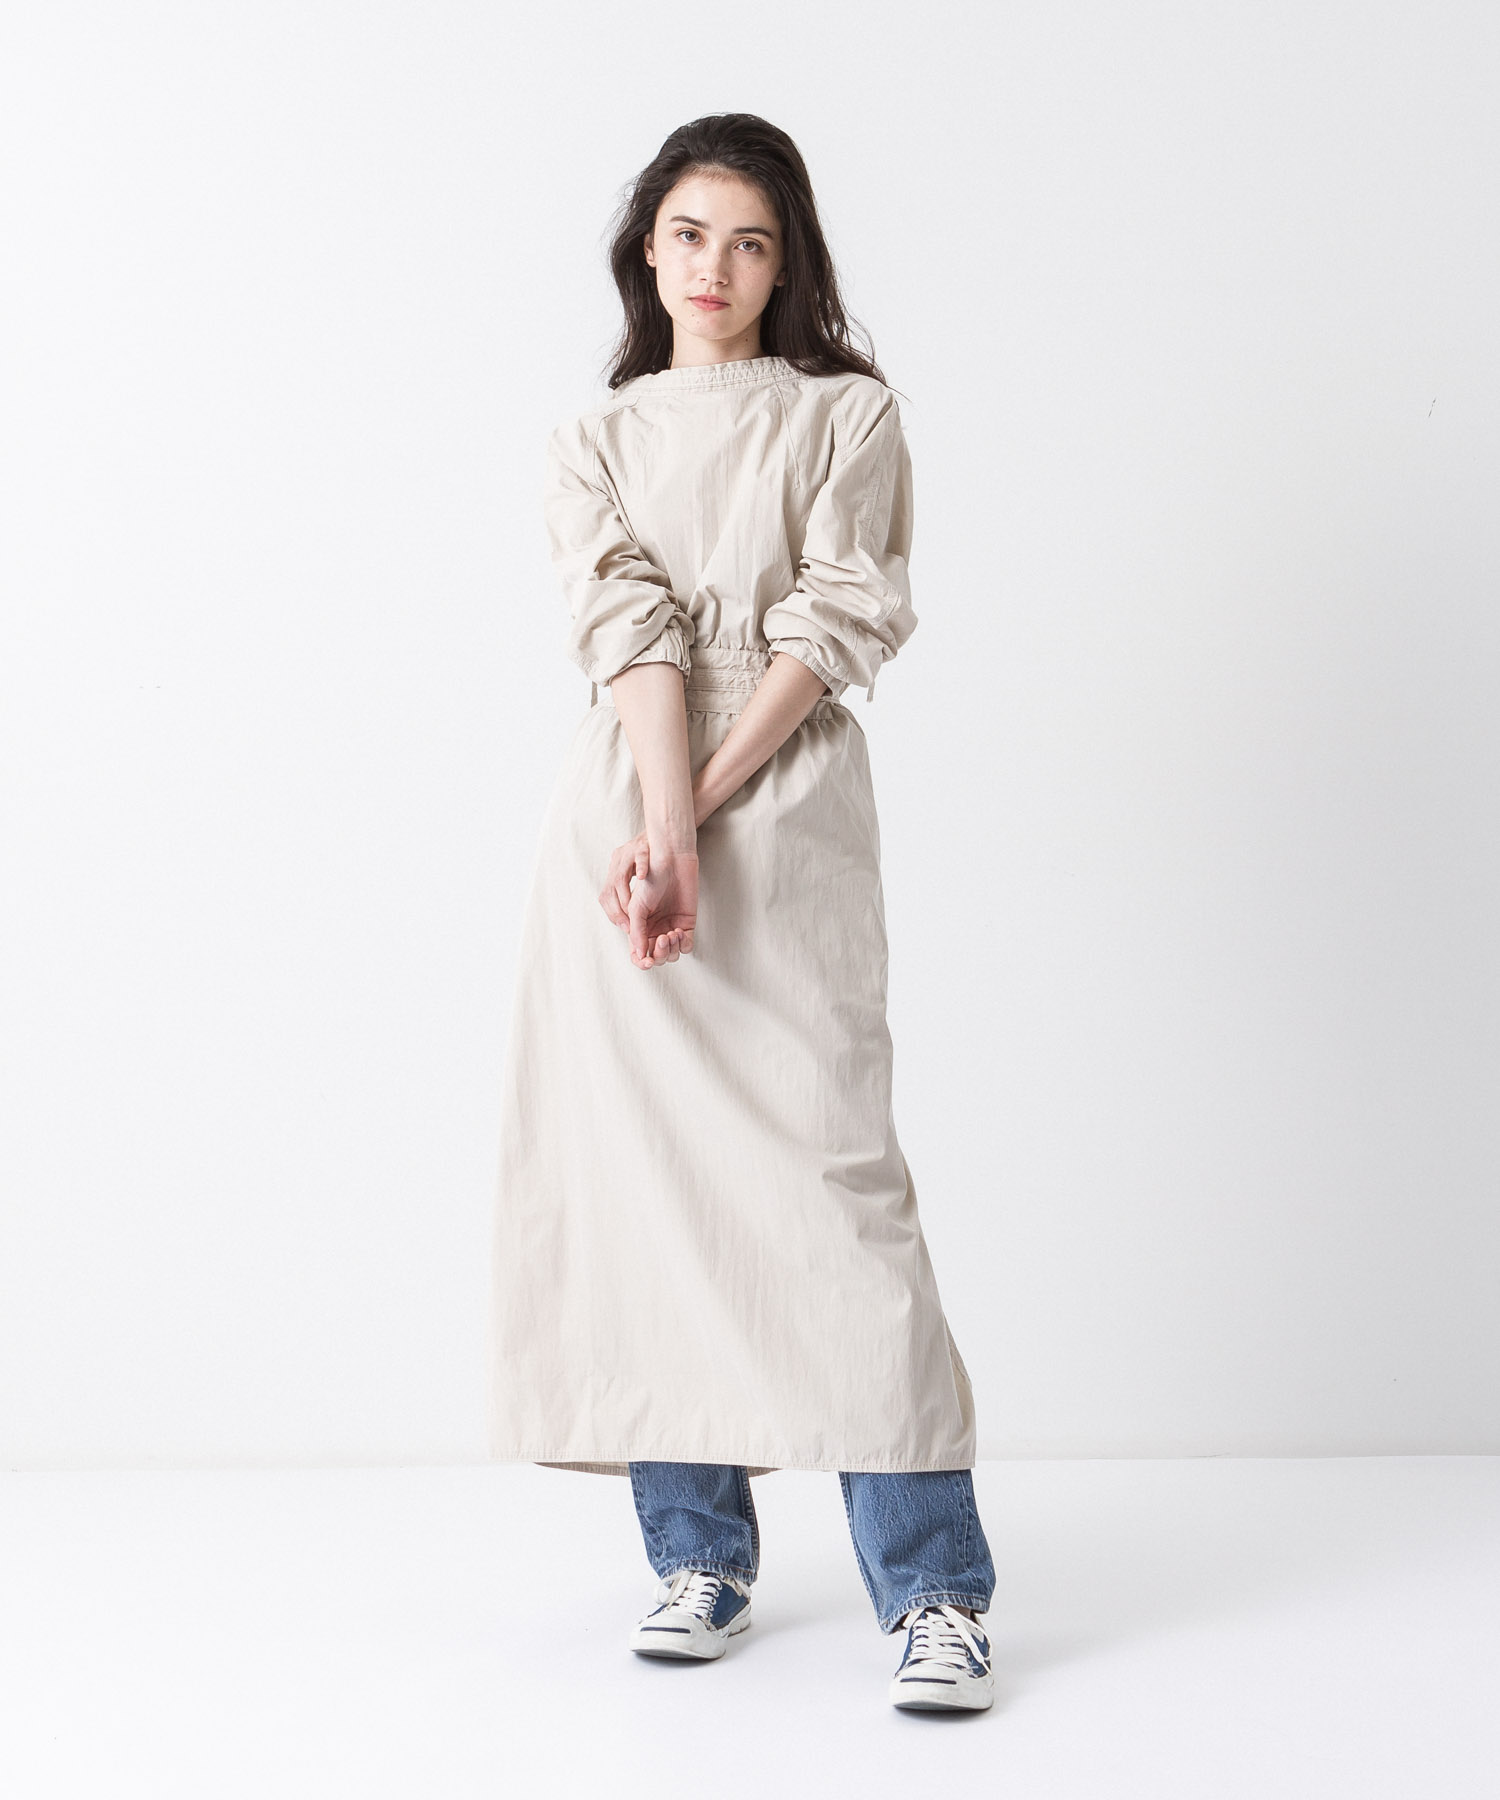 Military Aidman Gown - ECLU